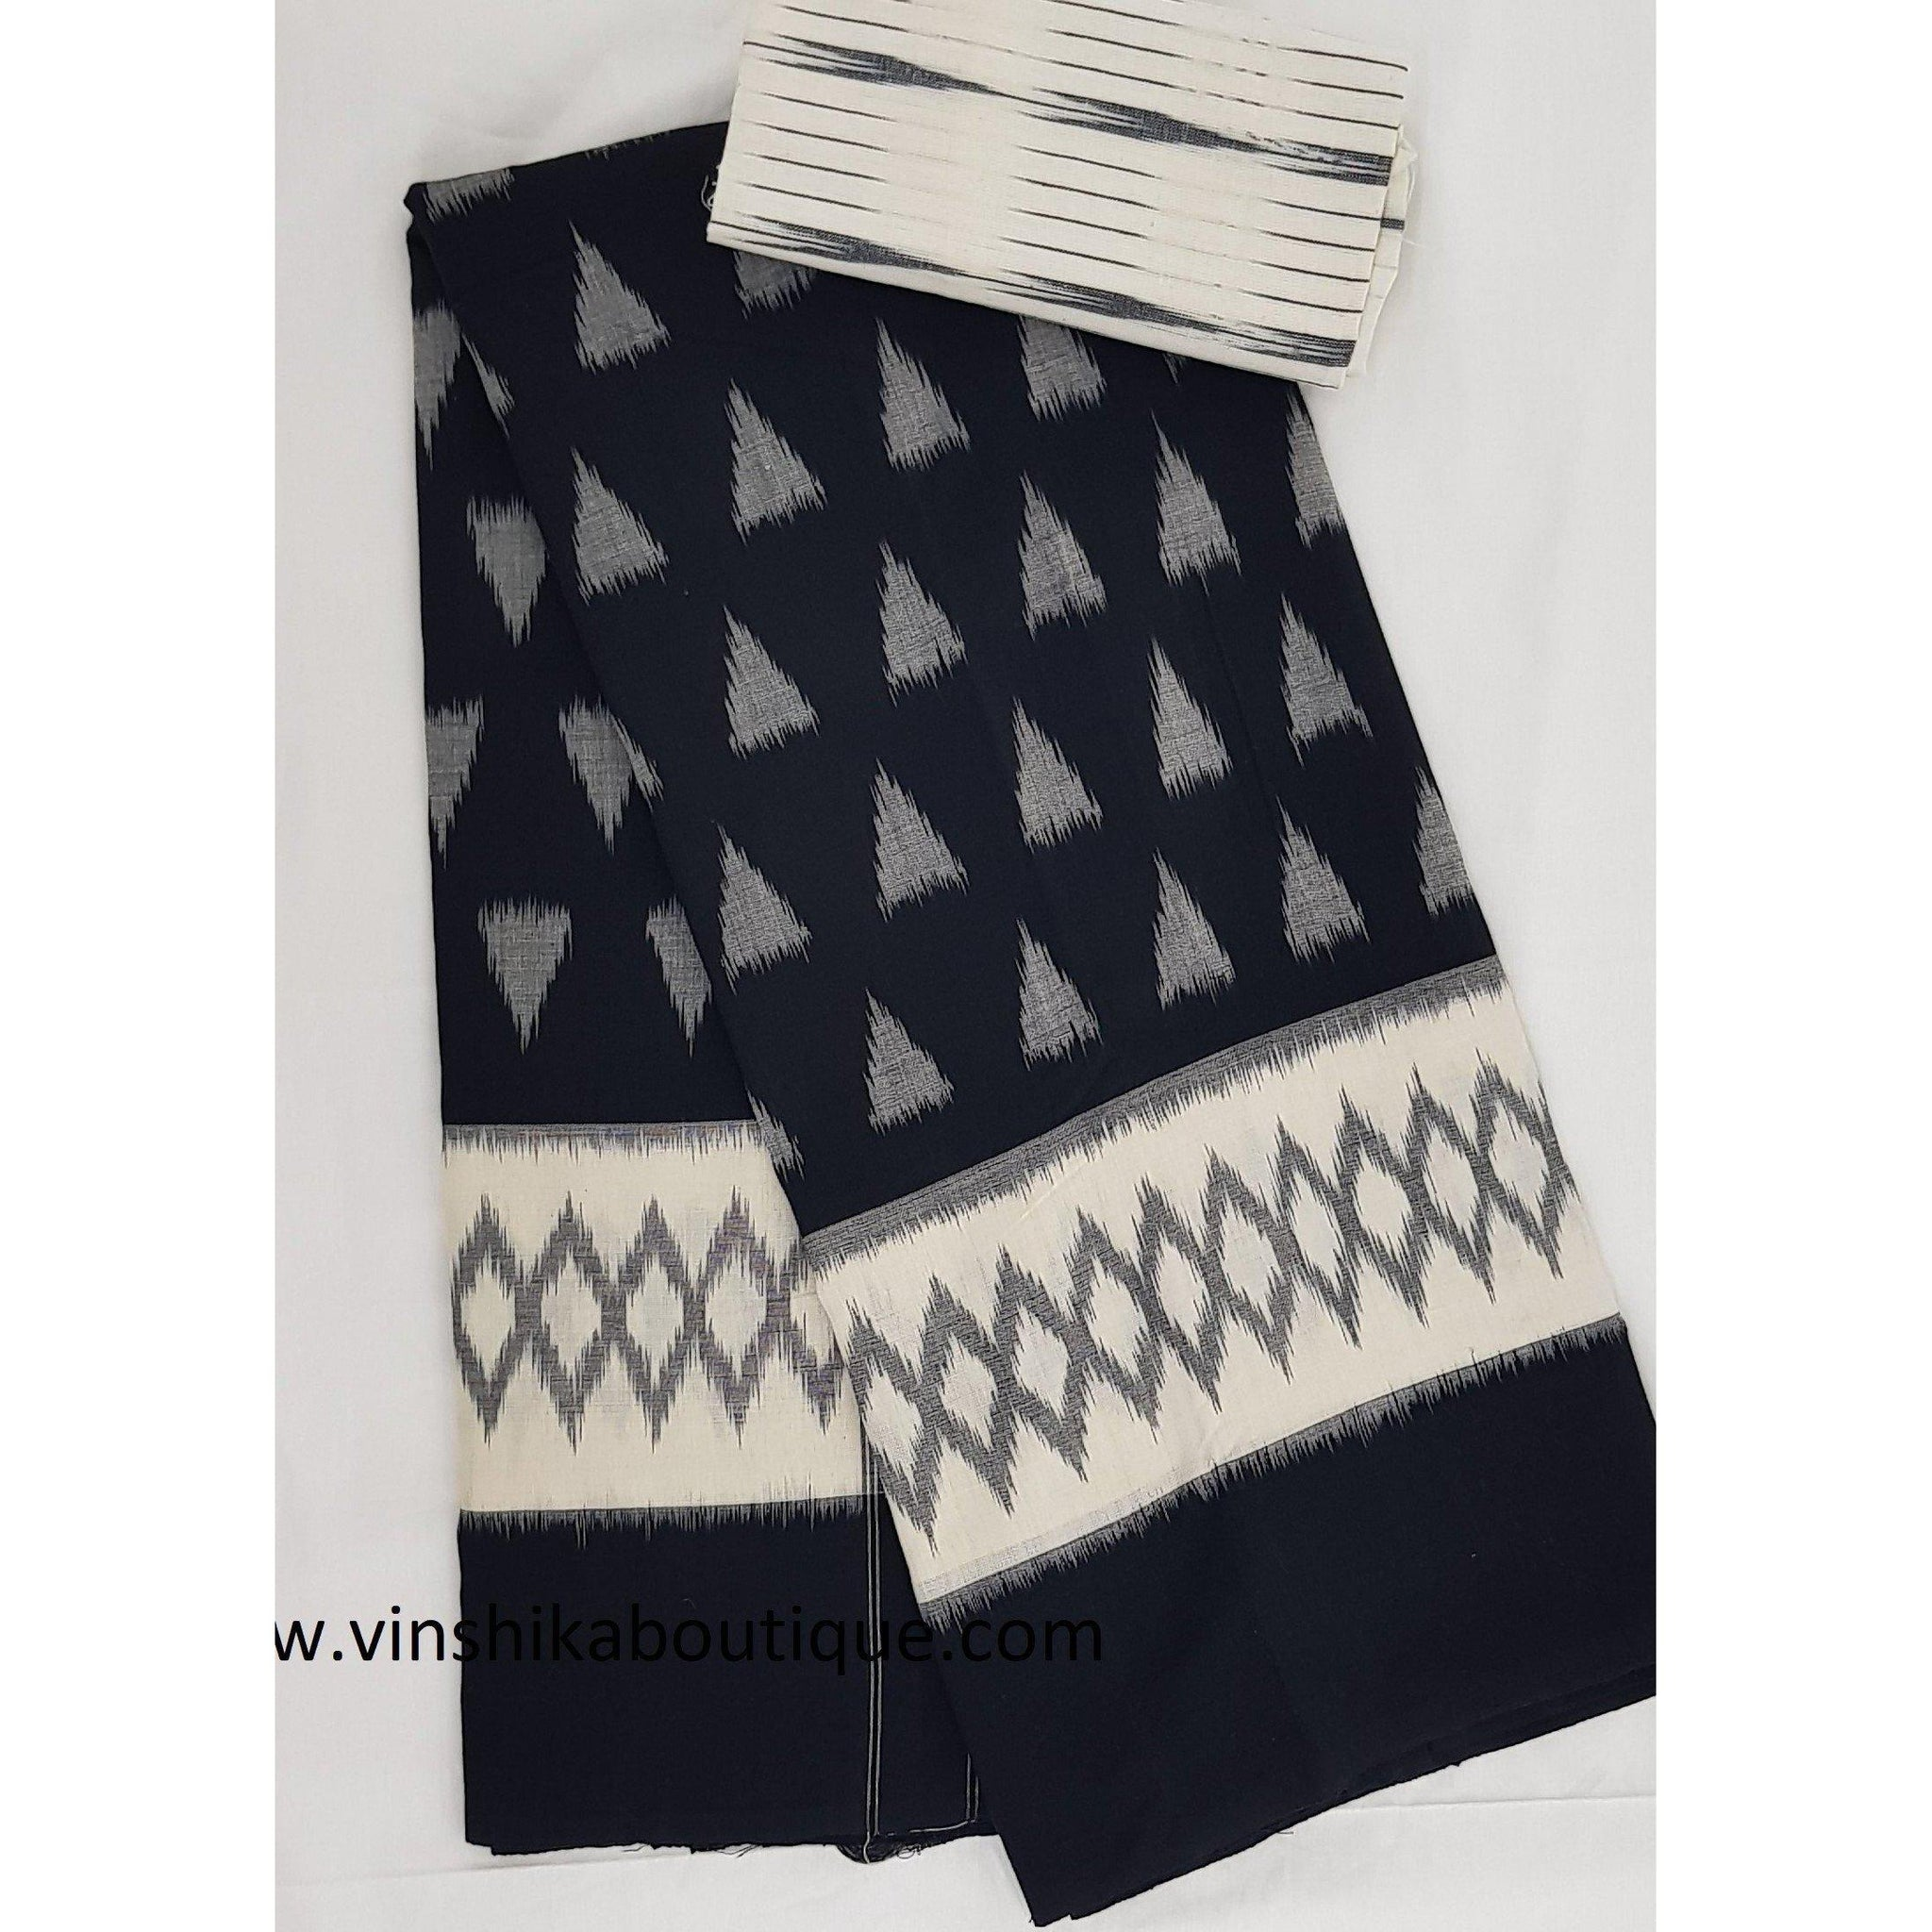 Ikat black and white color handwoven mercerized cotton saree - Vinshika